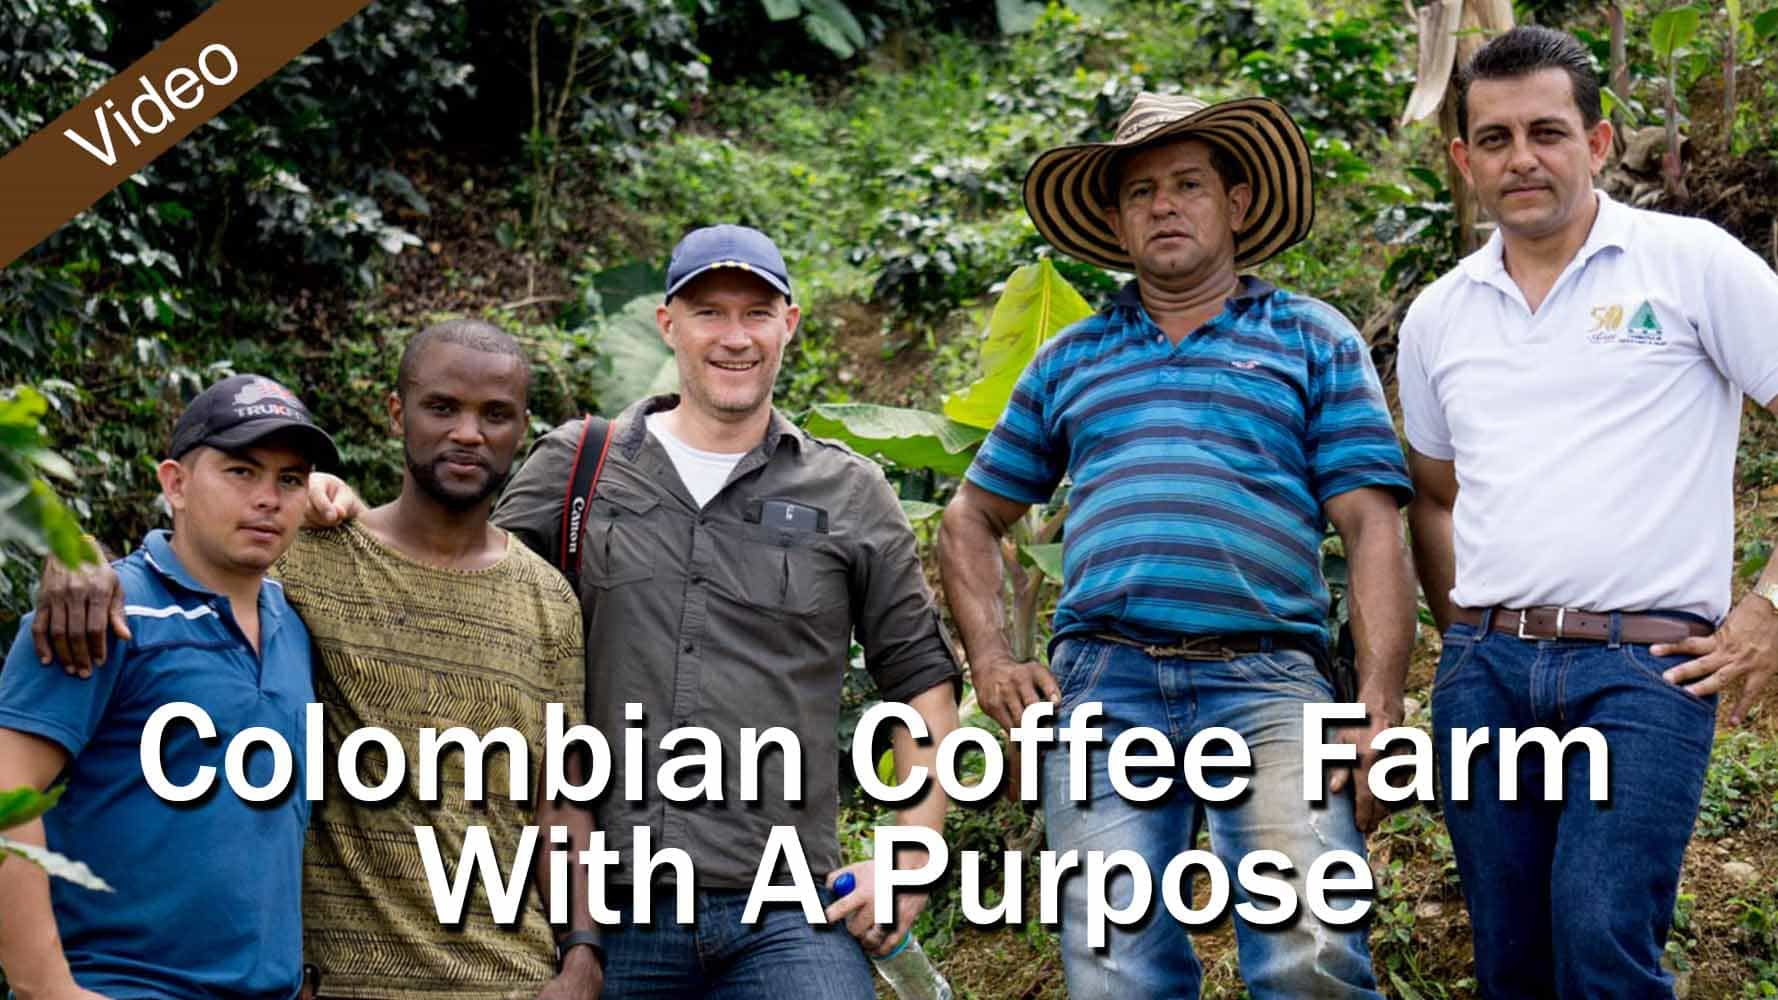 Colombian Coffee Farm With A Purpose FI